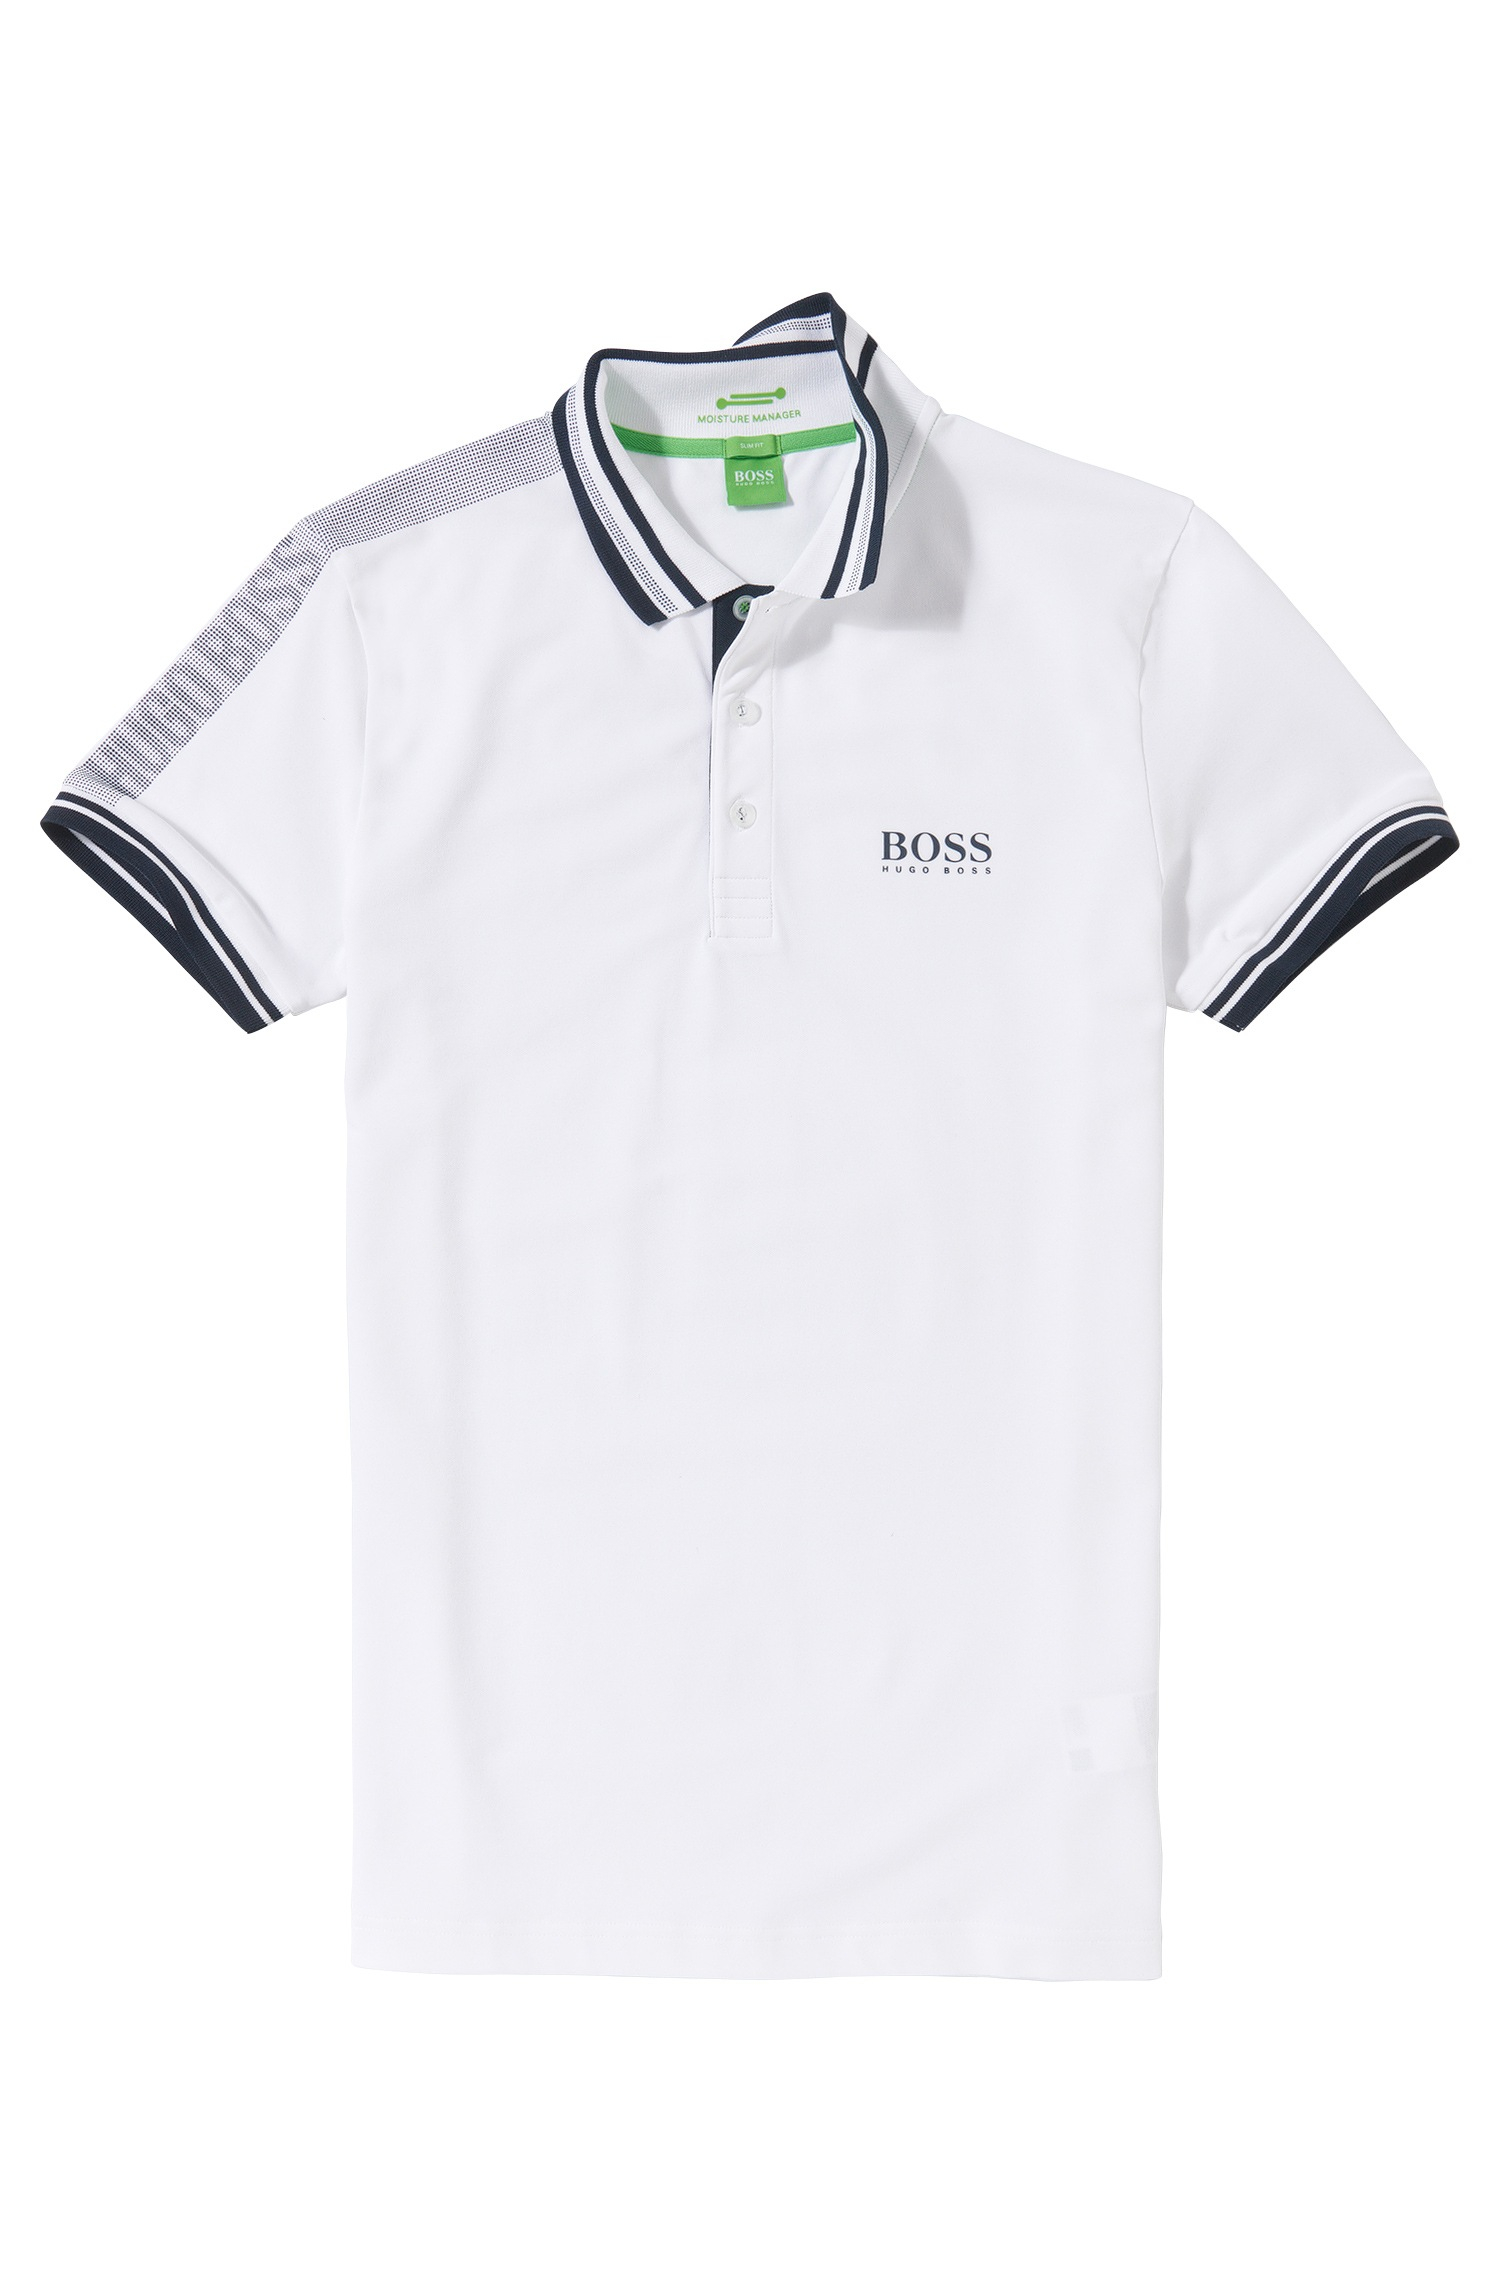 885f4e8d03c53b BOSS Green Slim Fit Golf Polo Shirt 'paule Pro' With Moisture ...